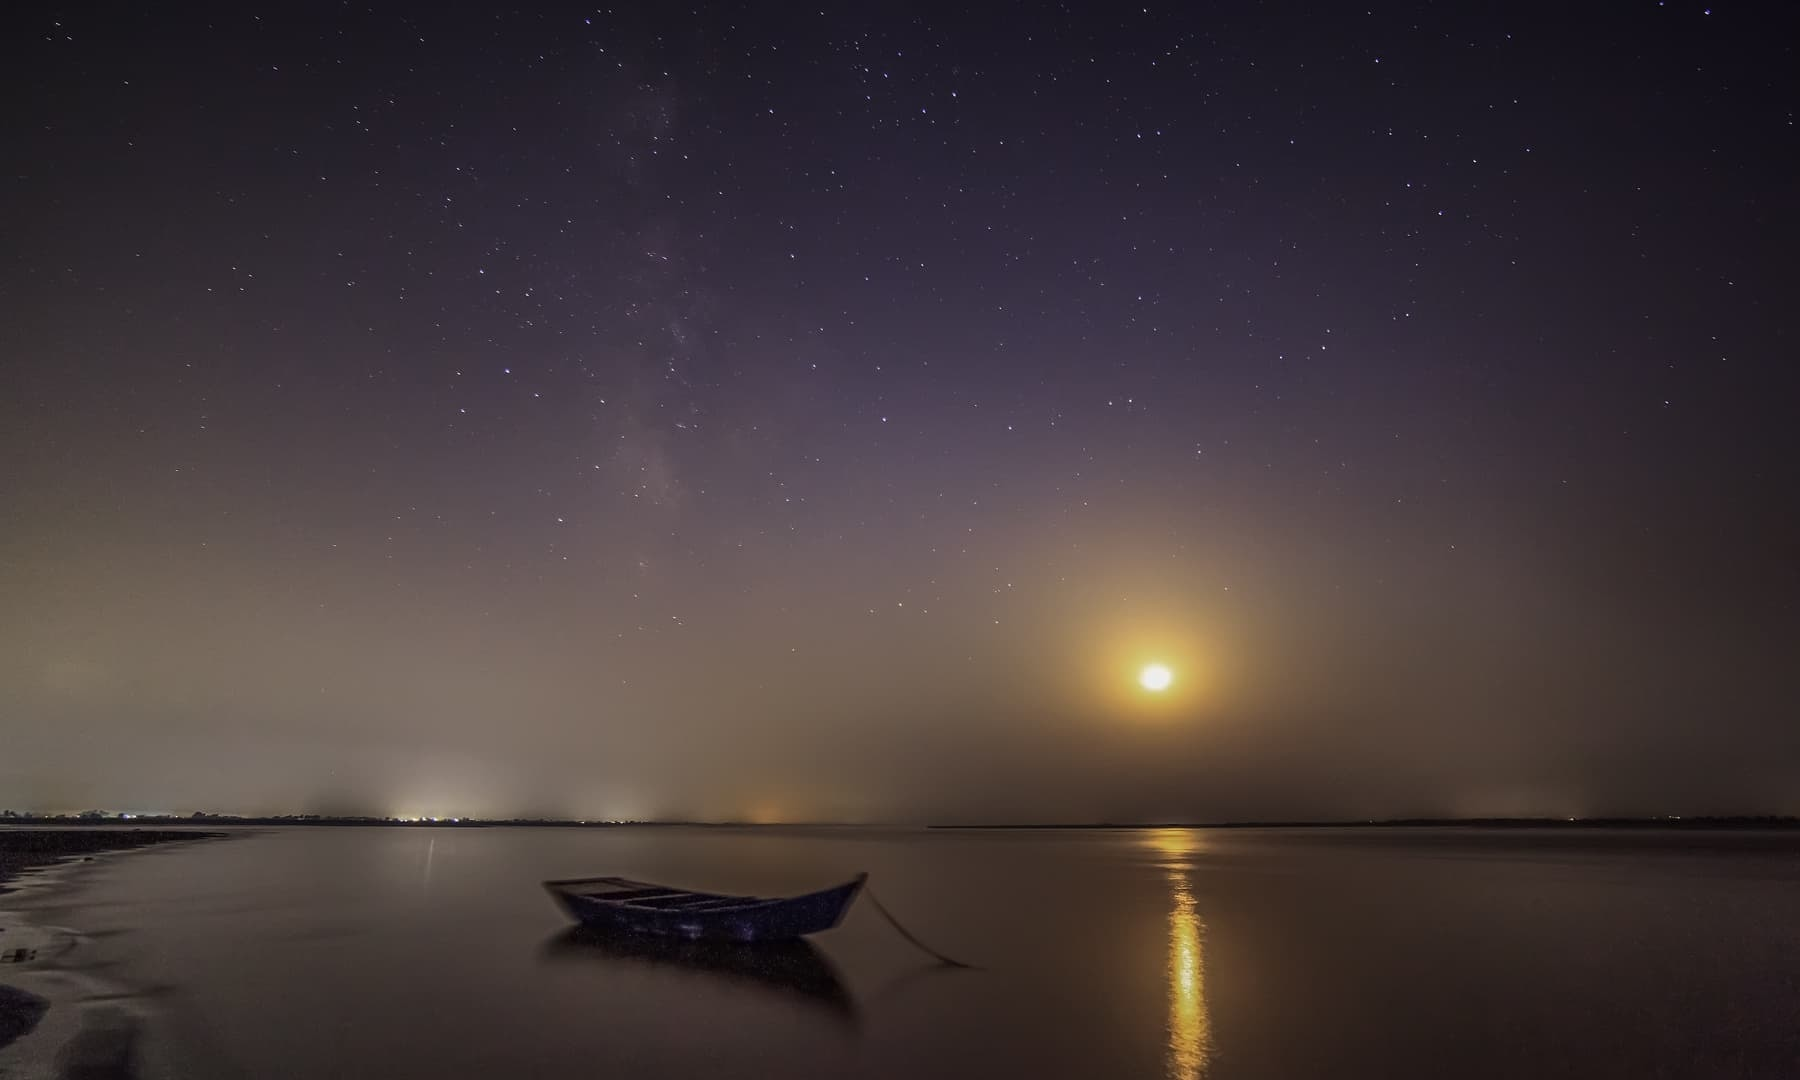 River Chenab at Night Source: reddit